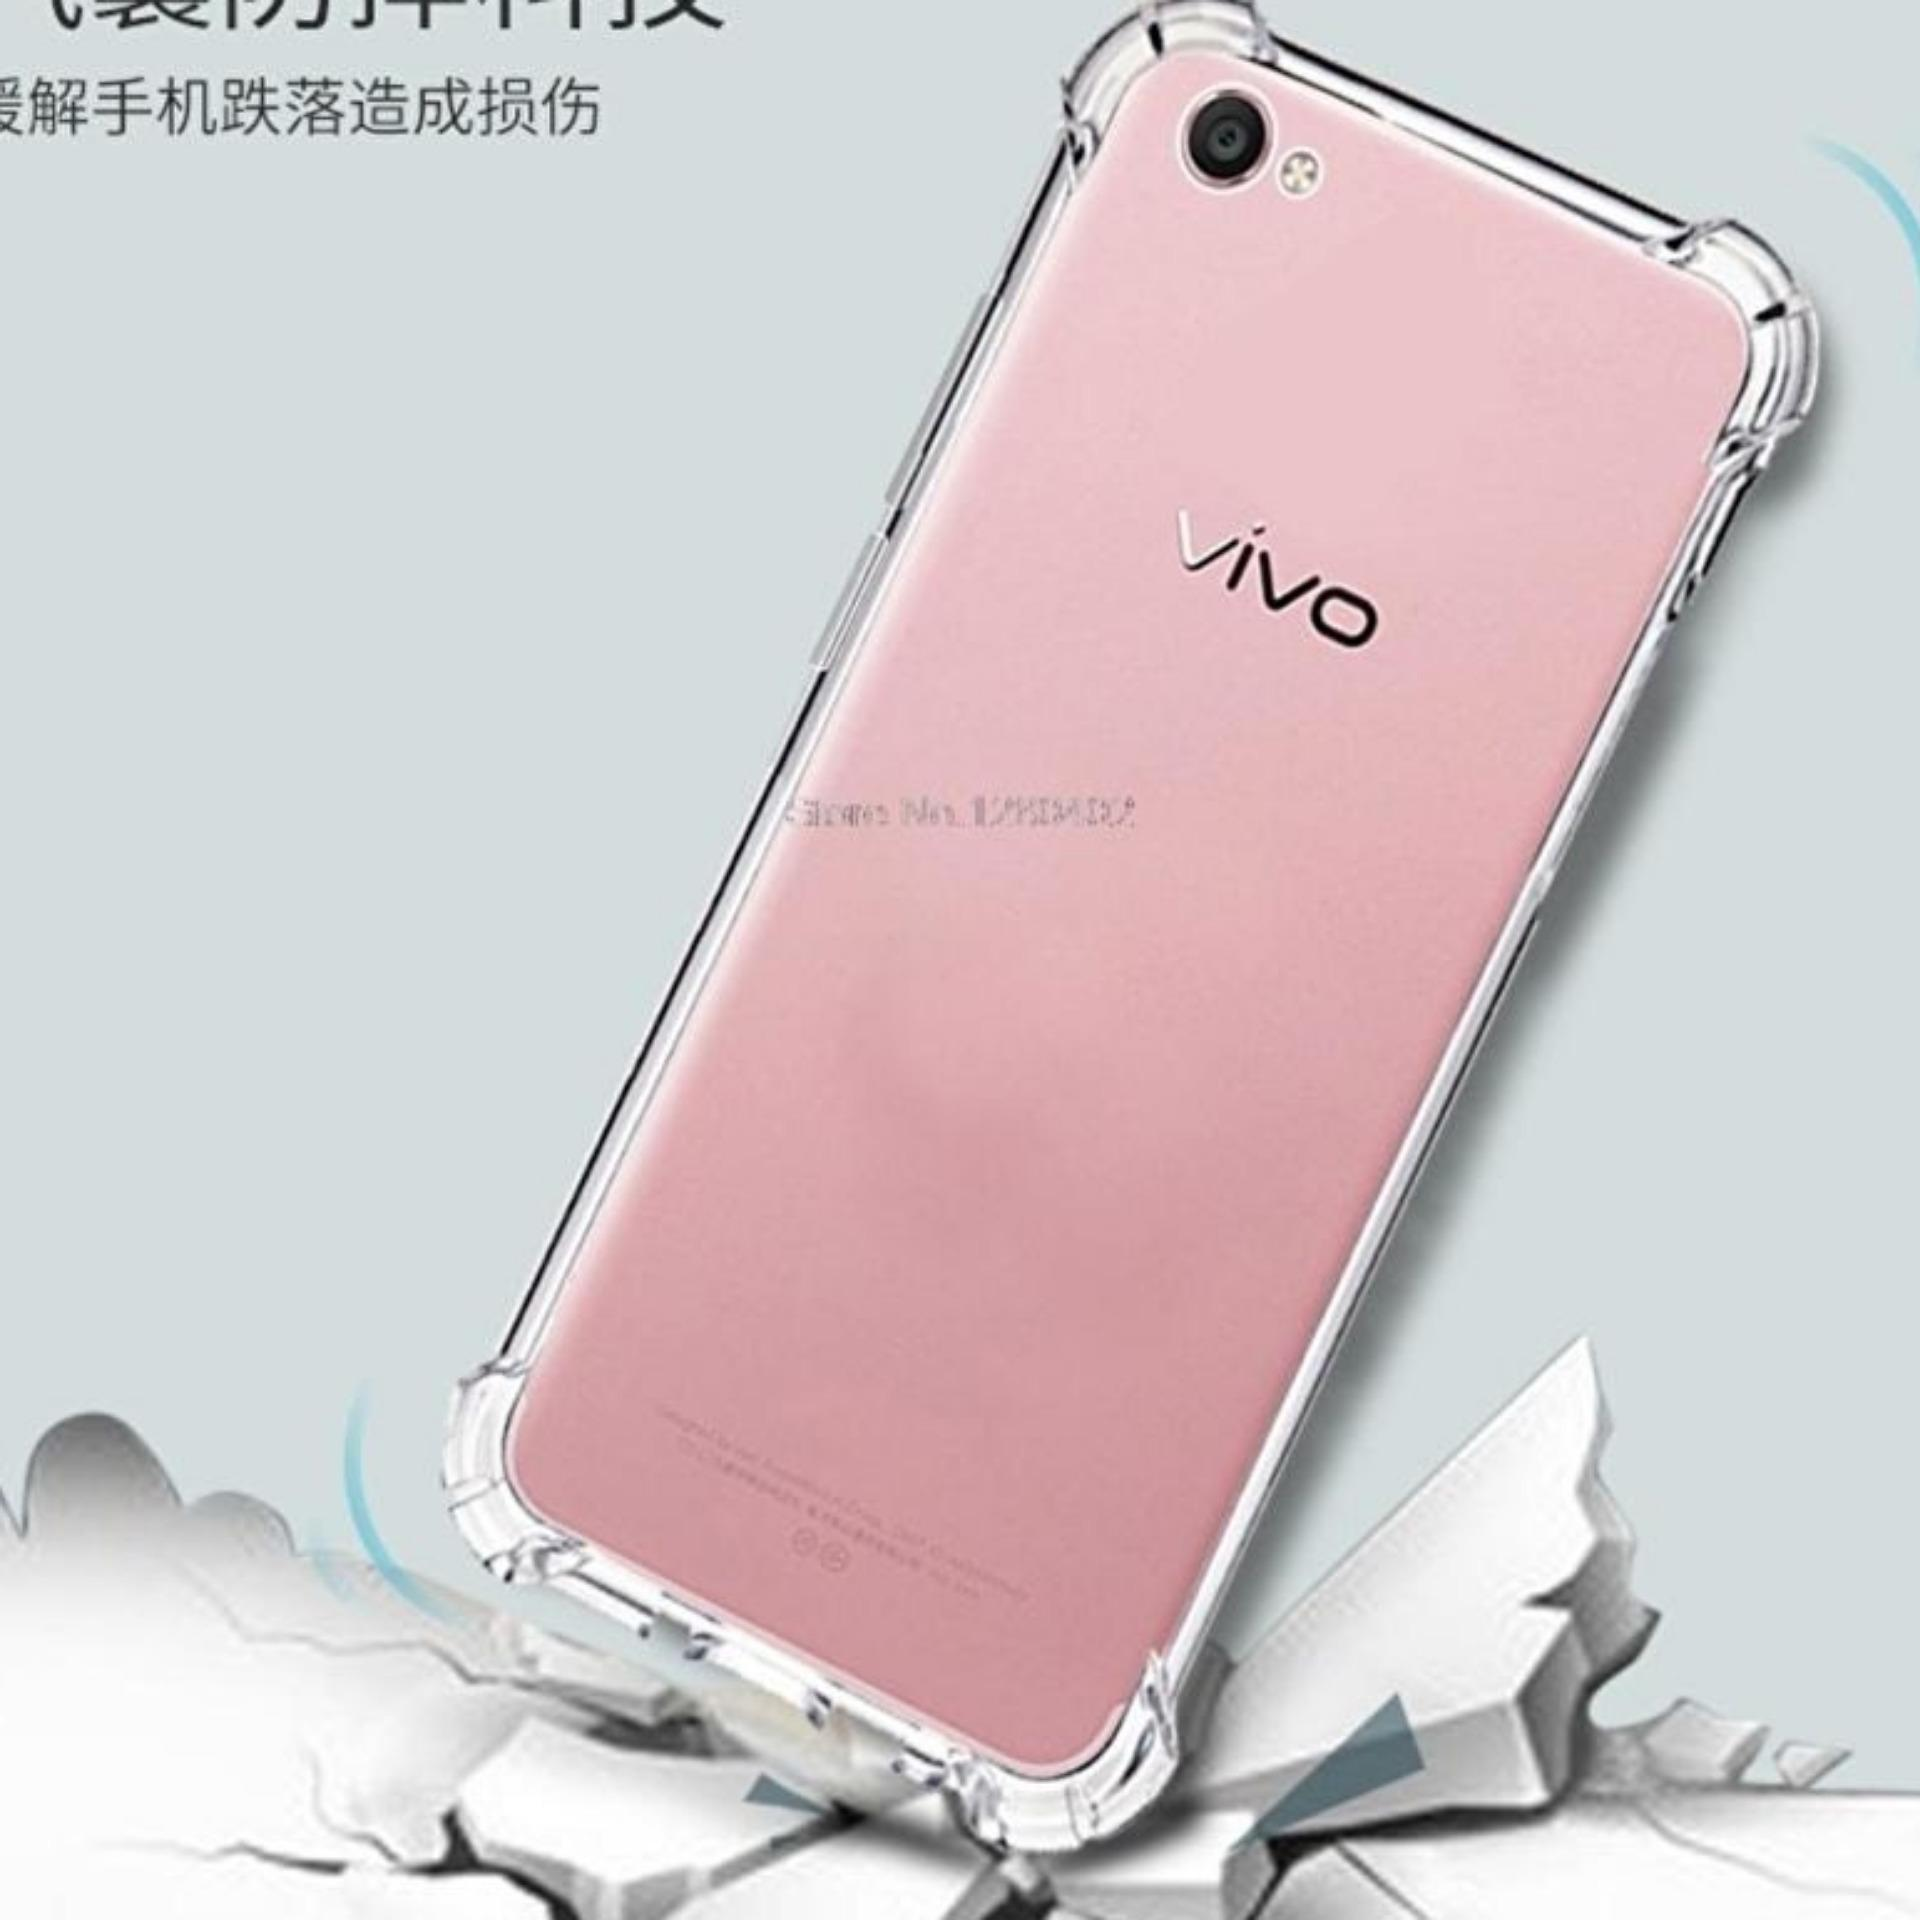 Case Oppo F1s A59 Ultrathin Aircase Clear Gratis Tempered Glass Source · CASE CHANEL SOFTCASE TPU COVER ANTI SHOCK ANTI CRACK FOR VIVO V5